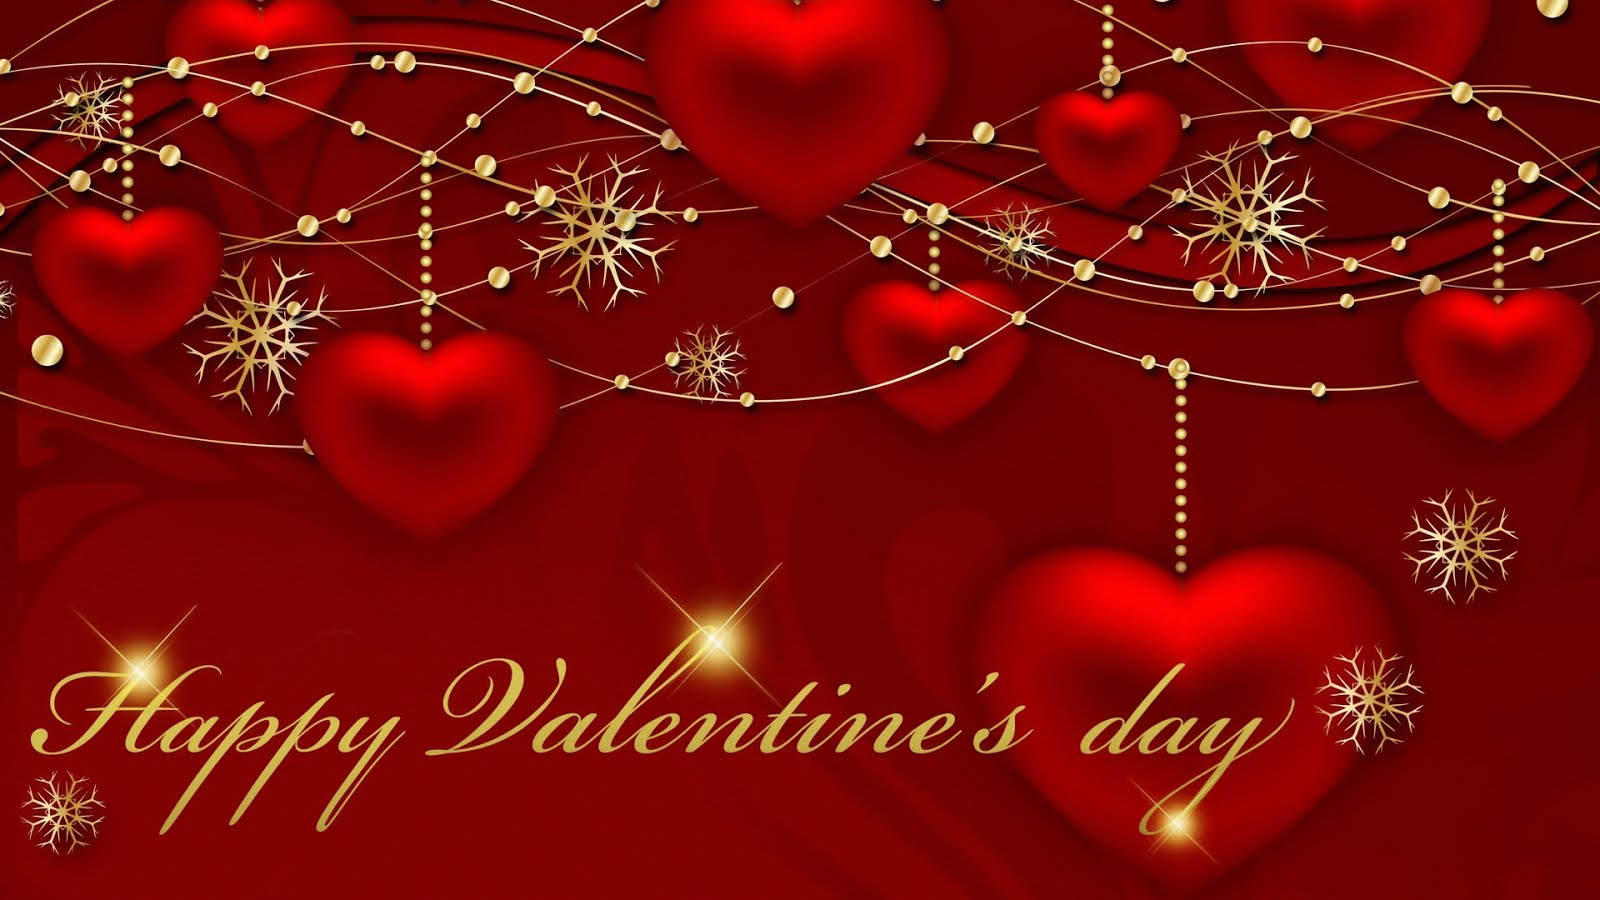 Happy Valentines Day 2017 Quotes Images